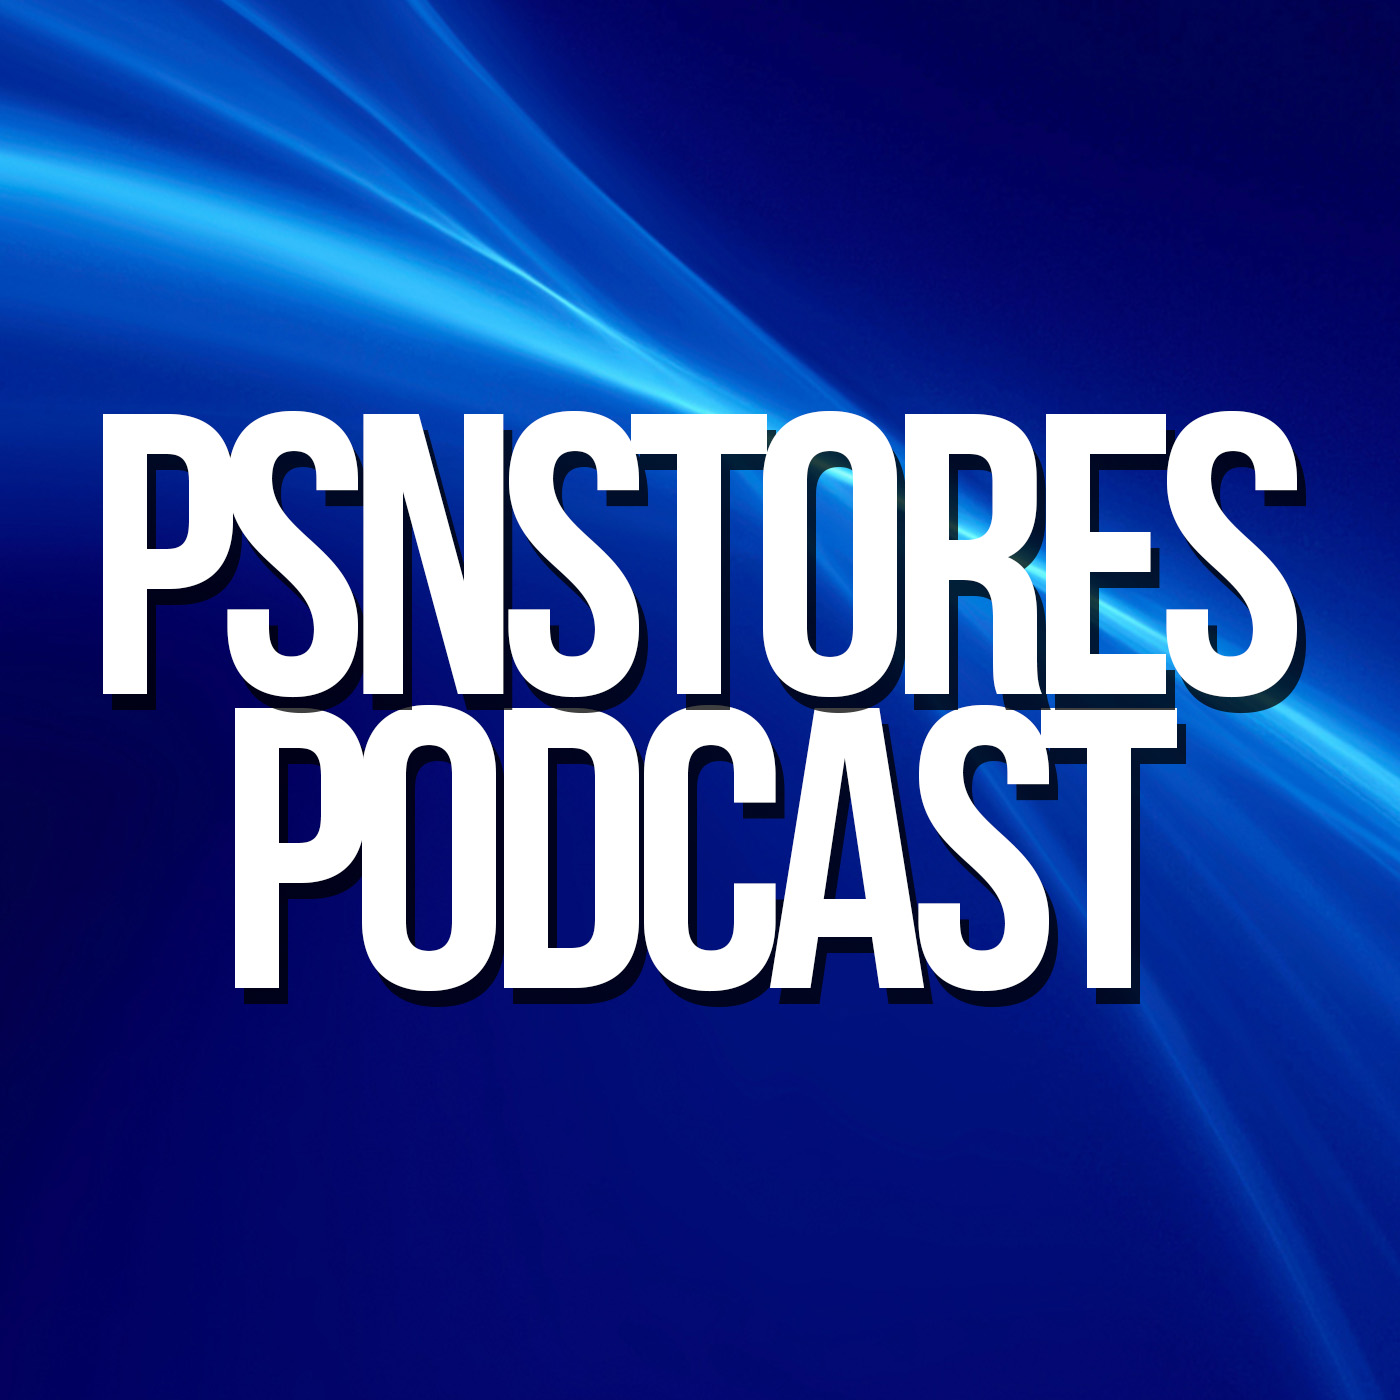 PSNStores Podcast